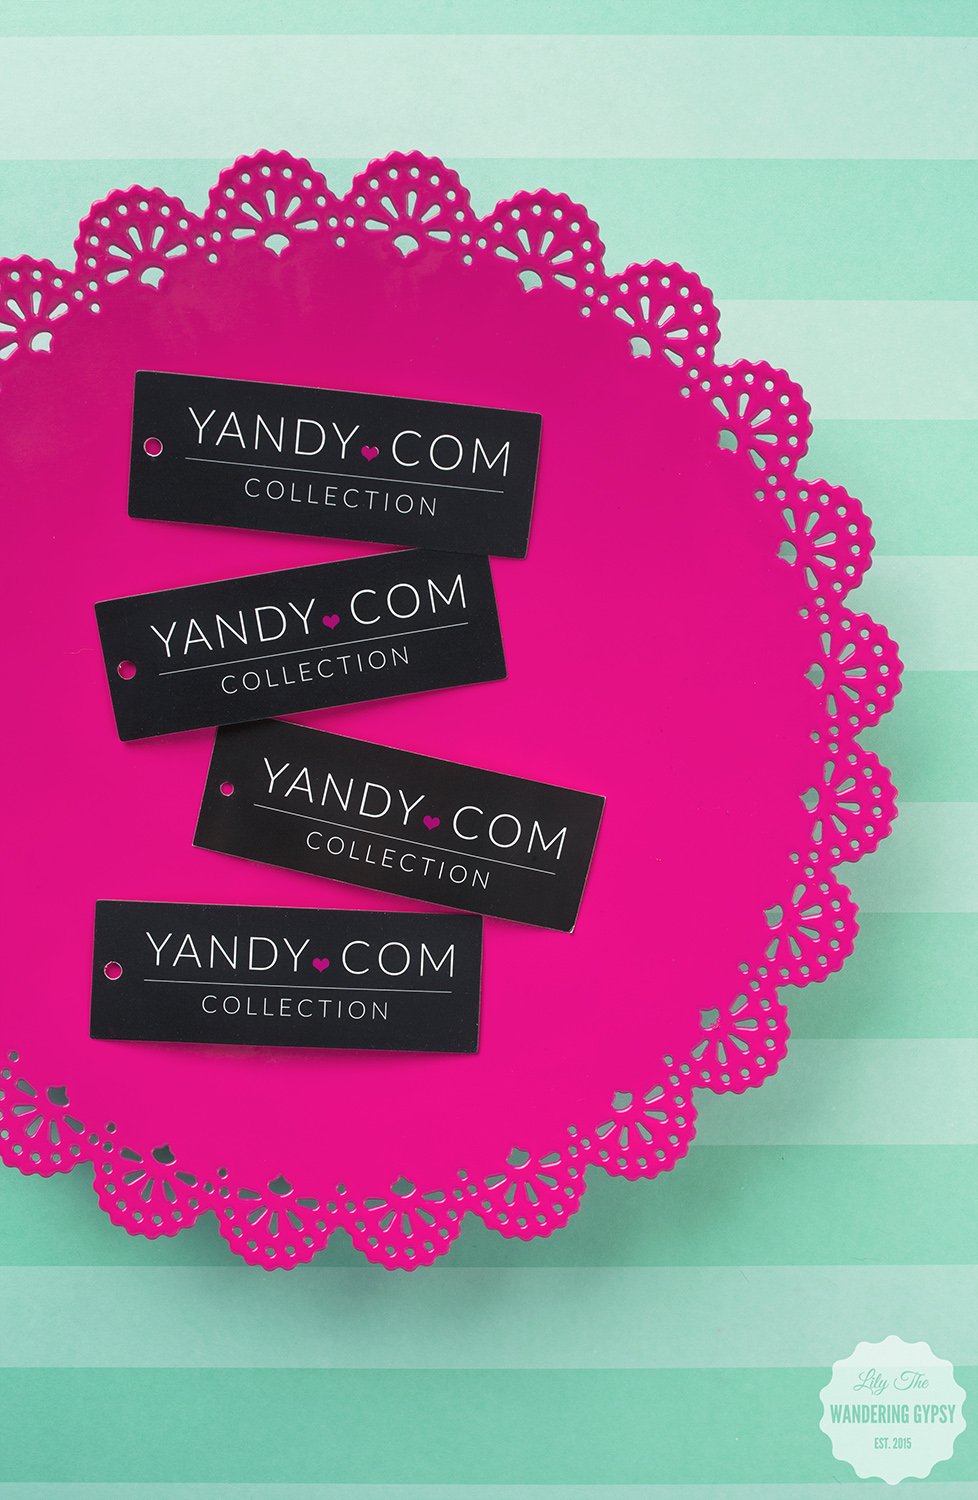 adorable goodies from yandy.com